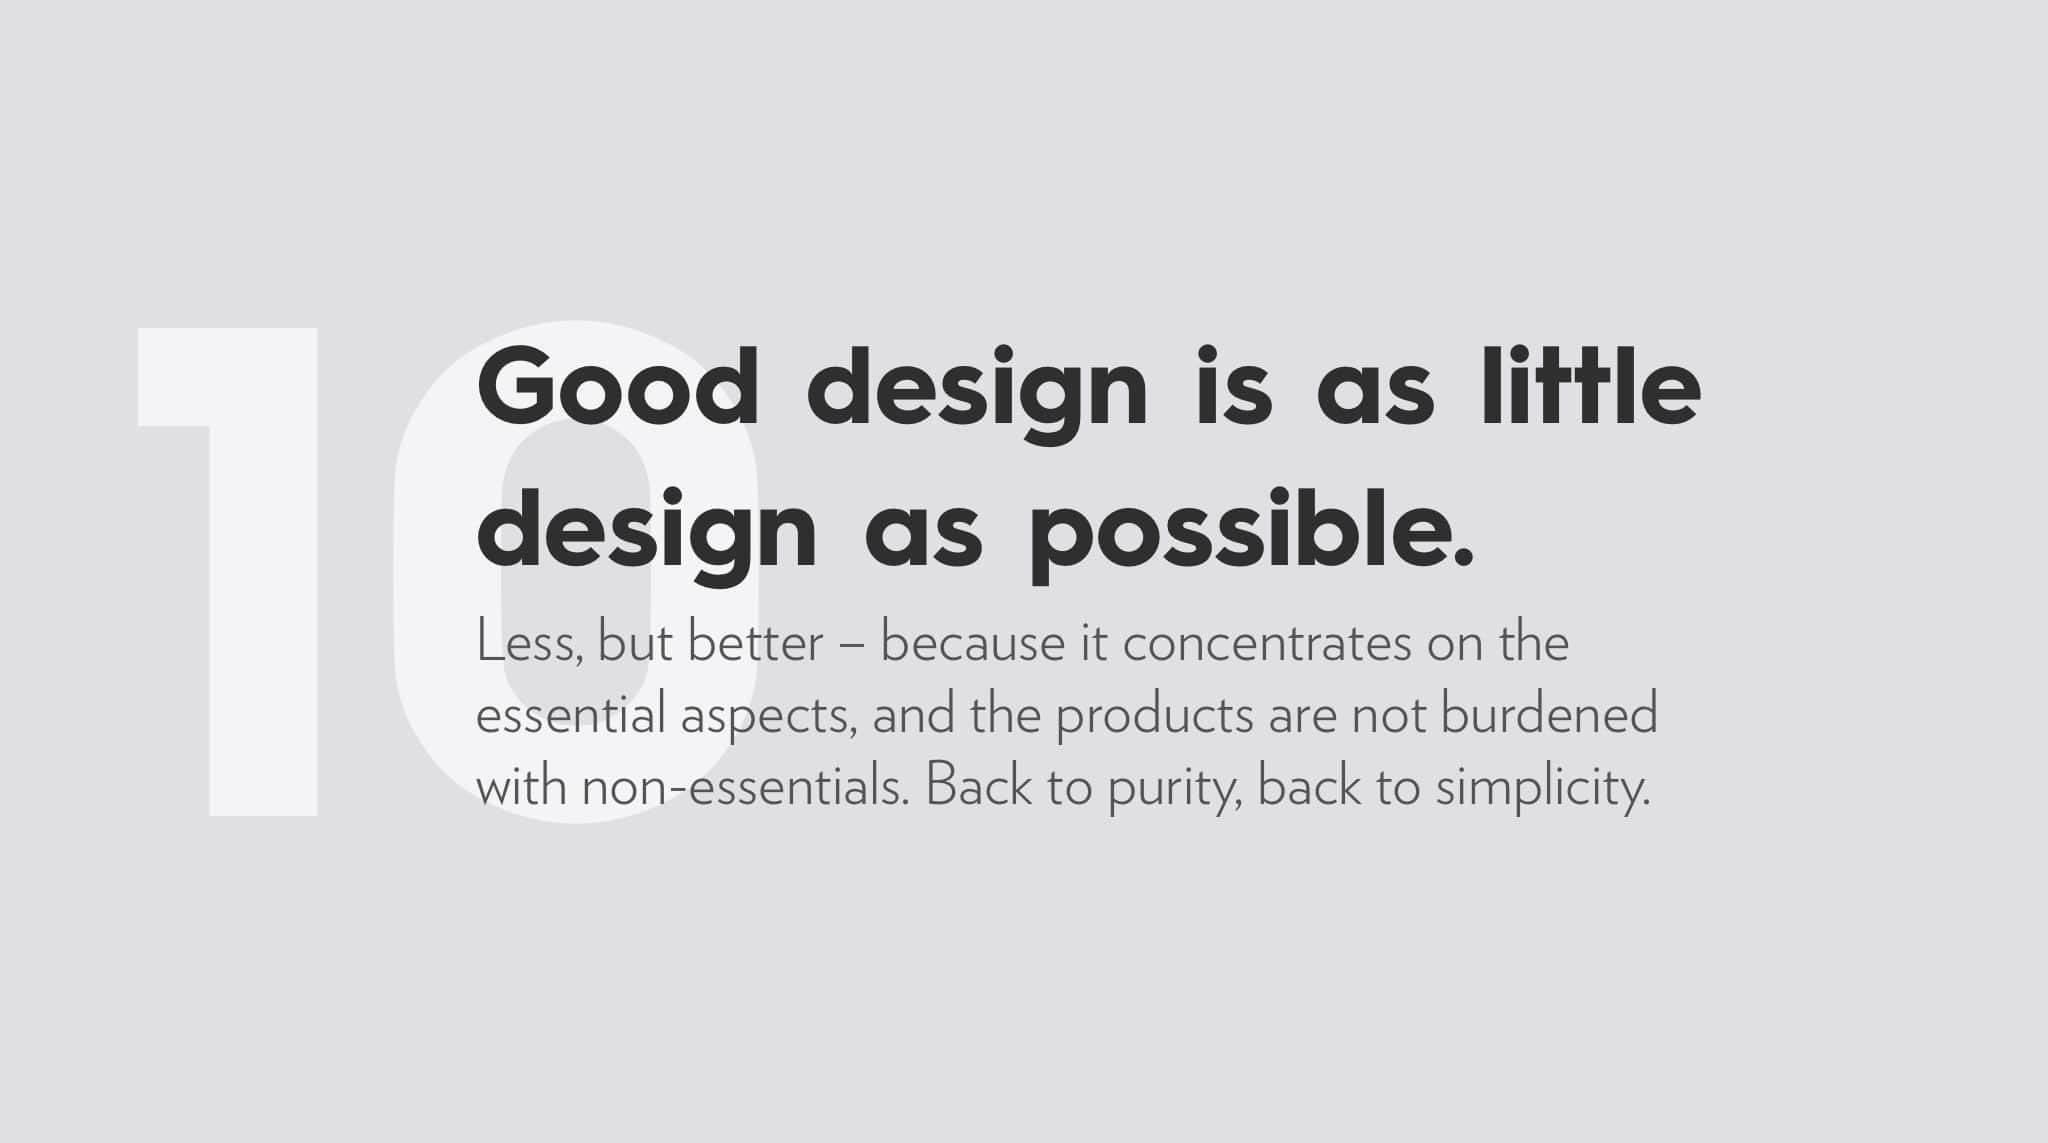 Ten Principles For Good Design by Dieter Rams, good design is as little design as possible.